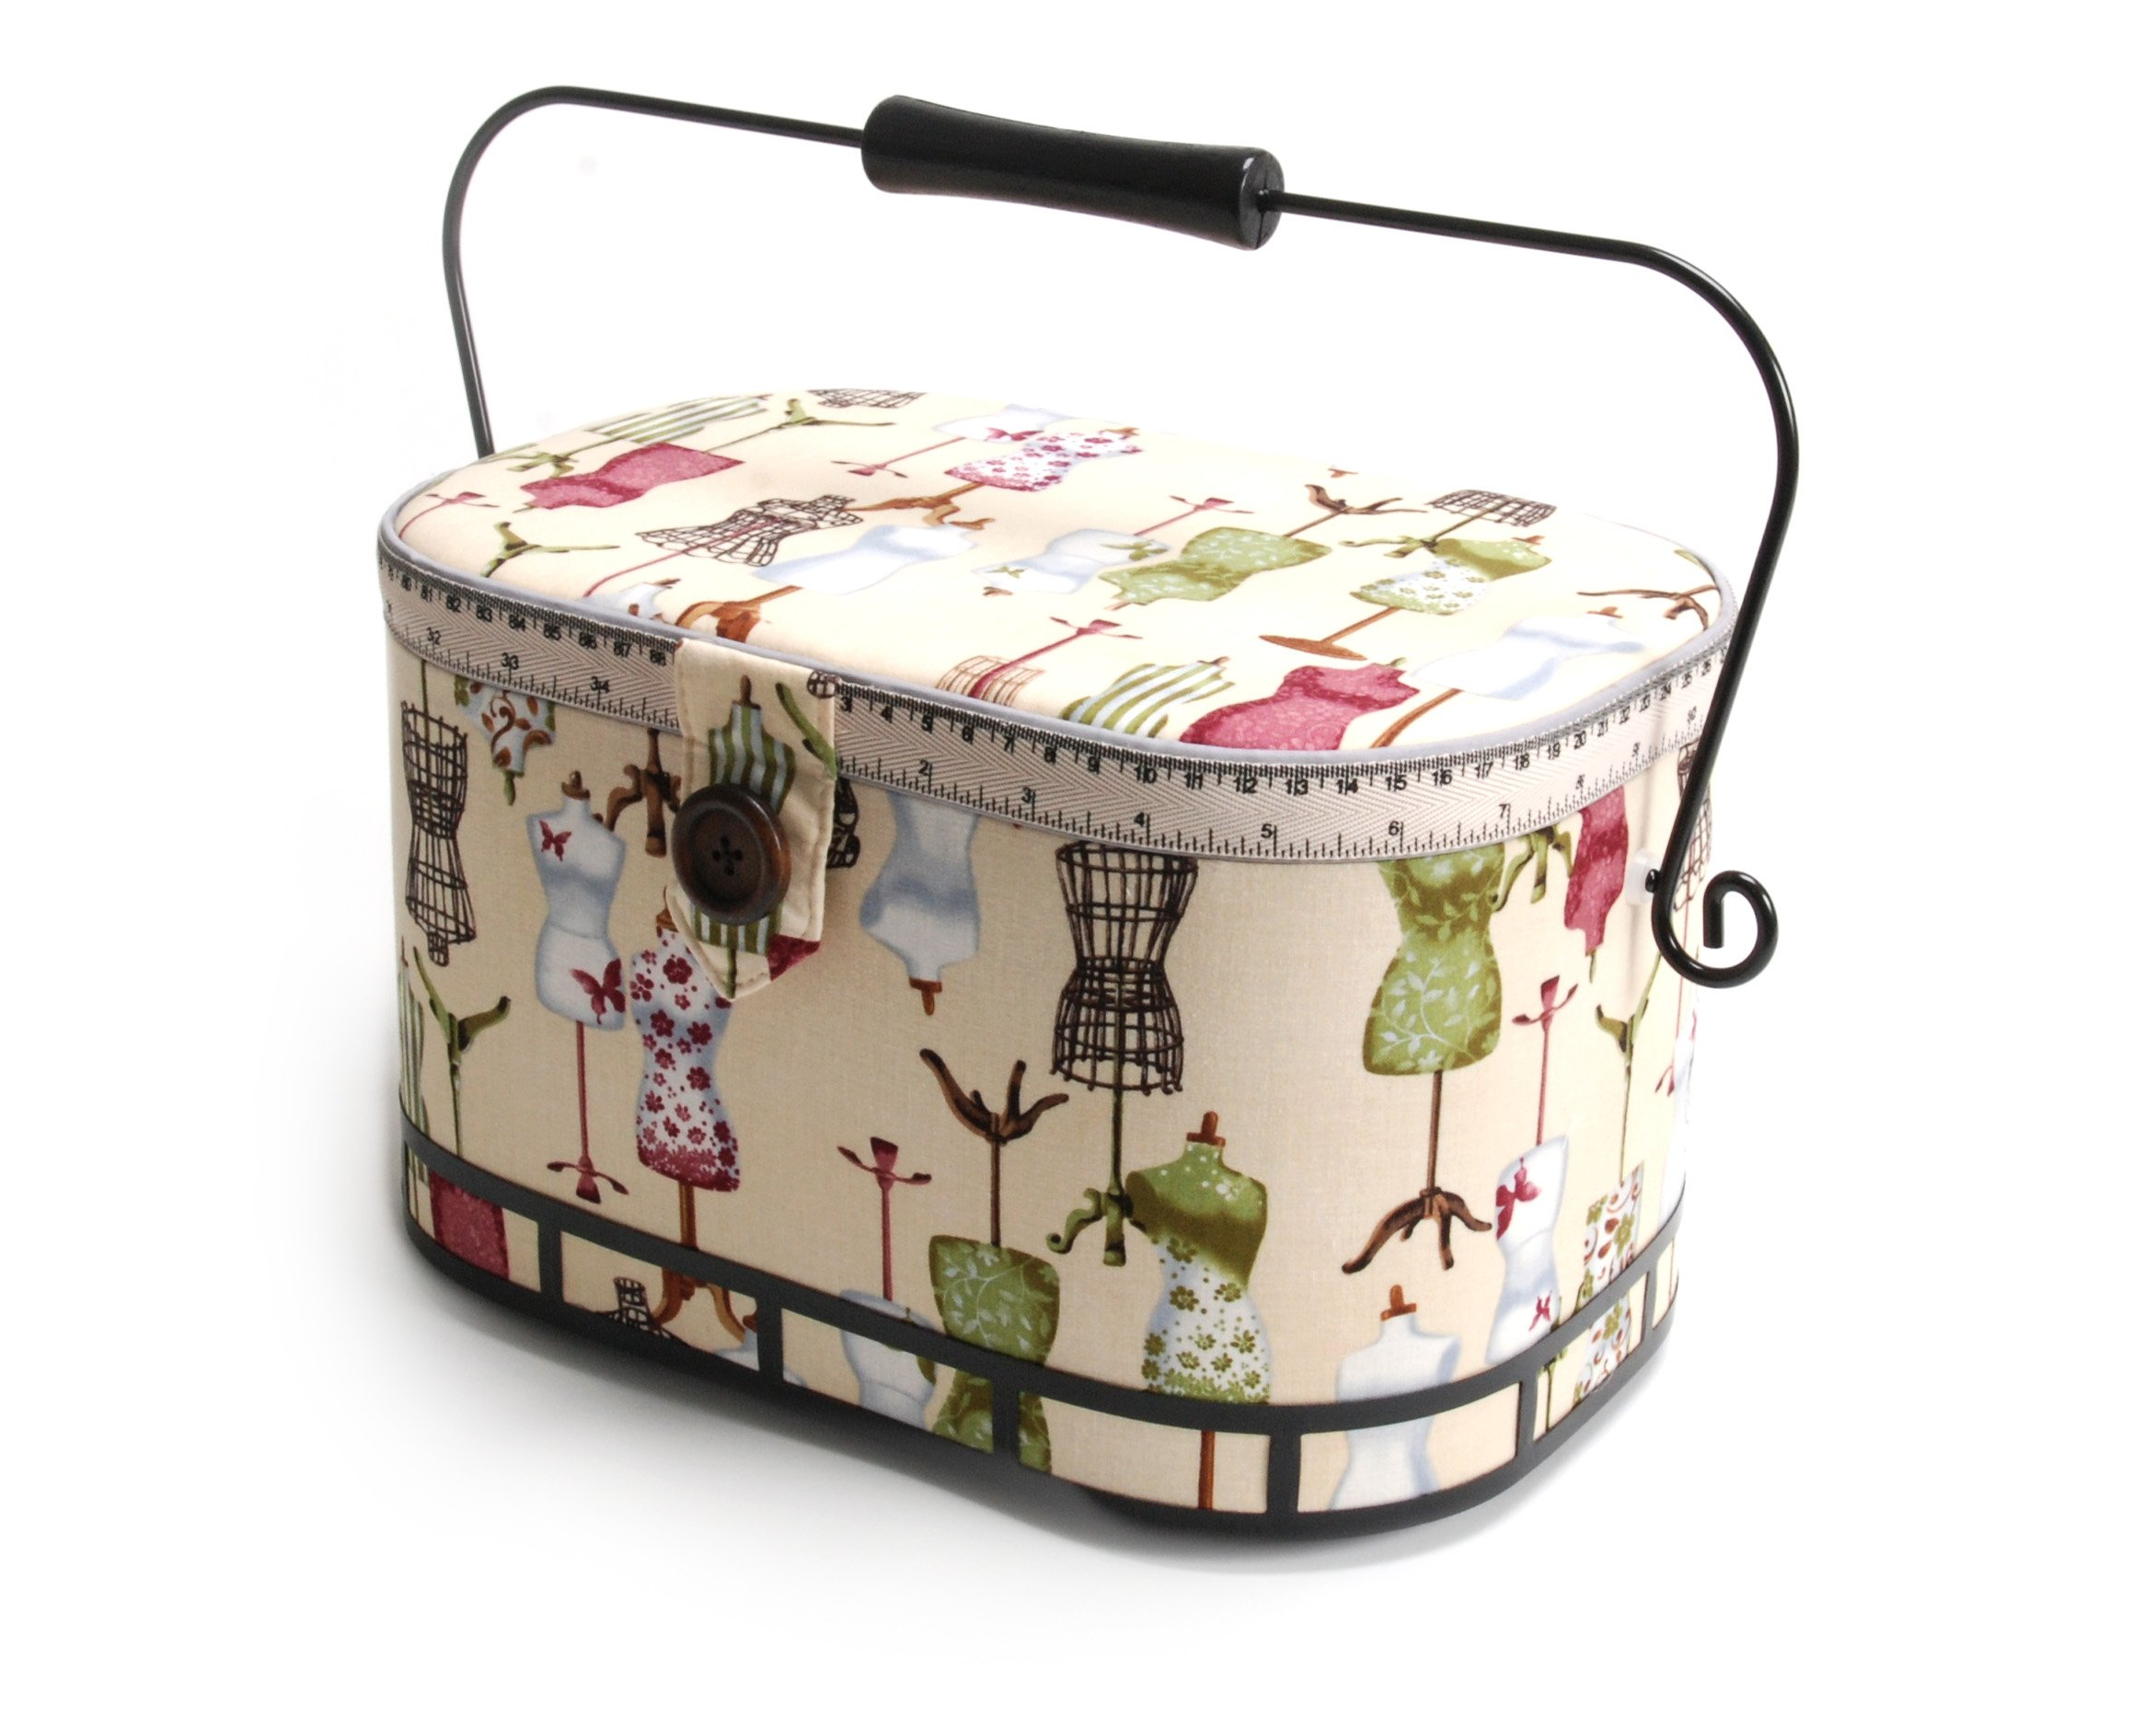 Dritz St. Jane Sewing Basket, Large Oval (metal handle) by Dritz St. Jane